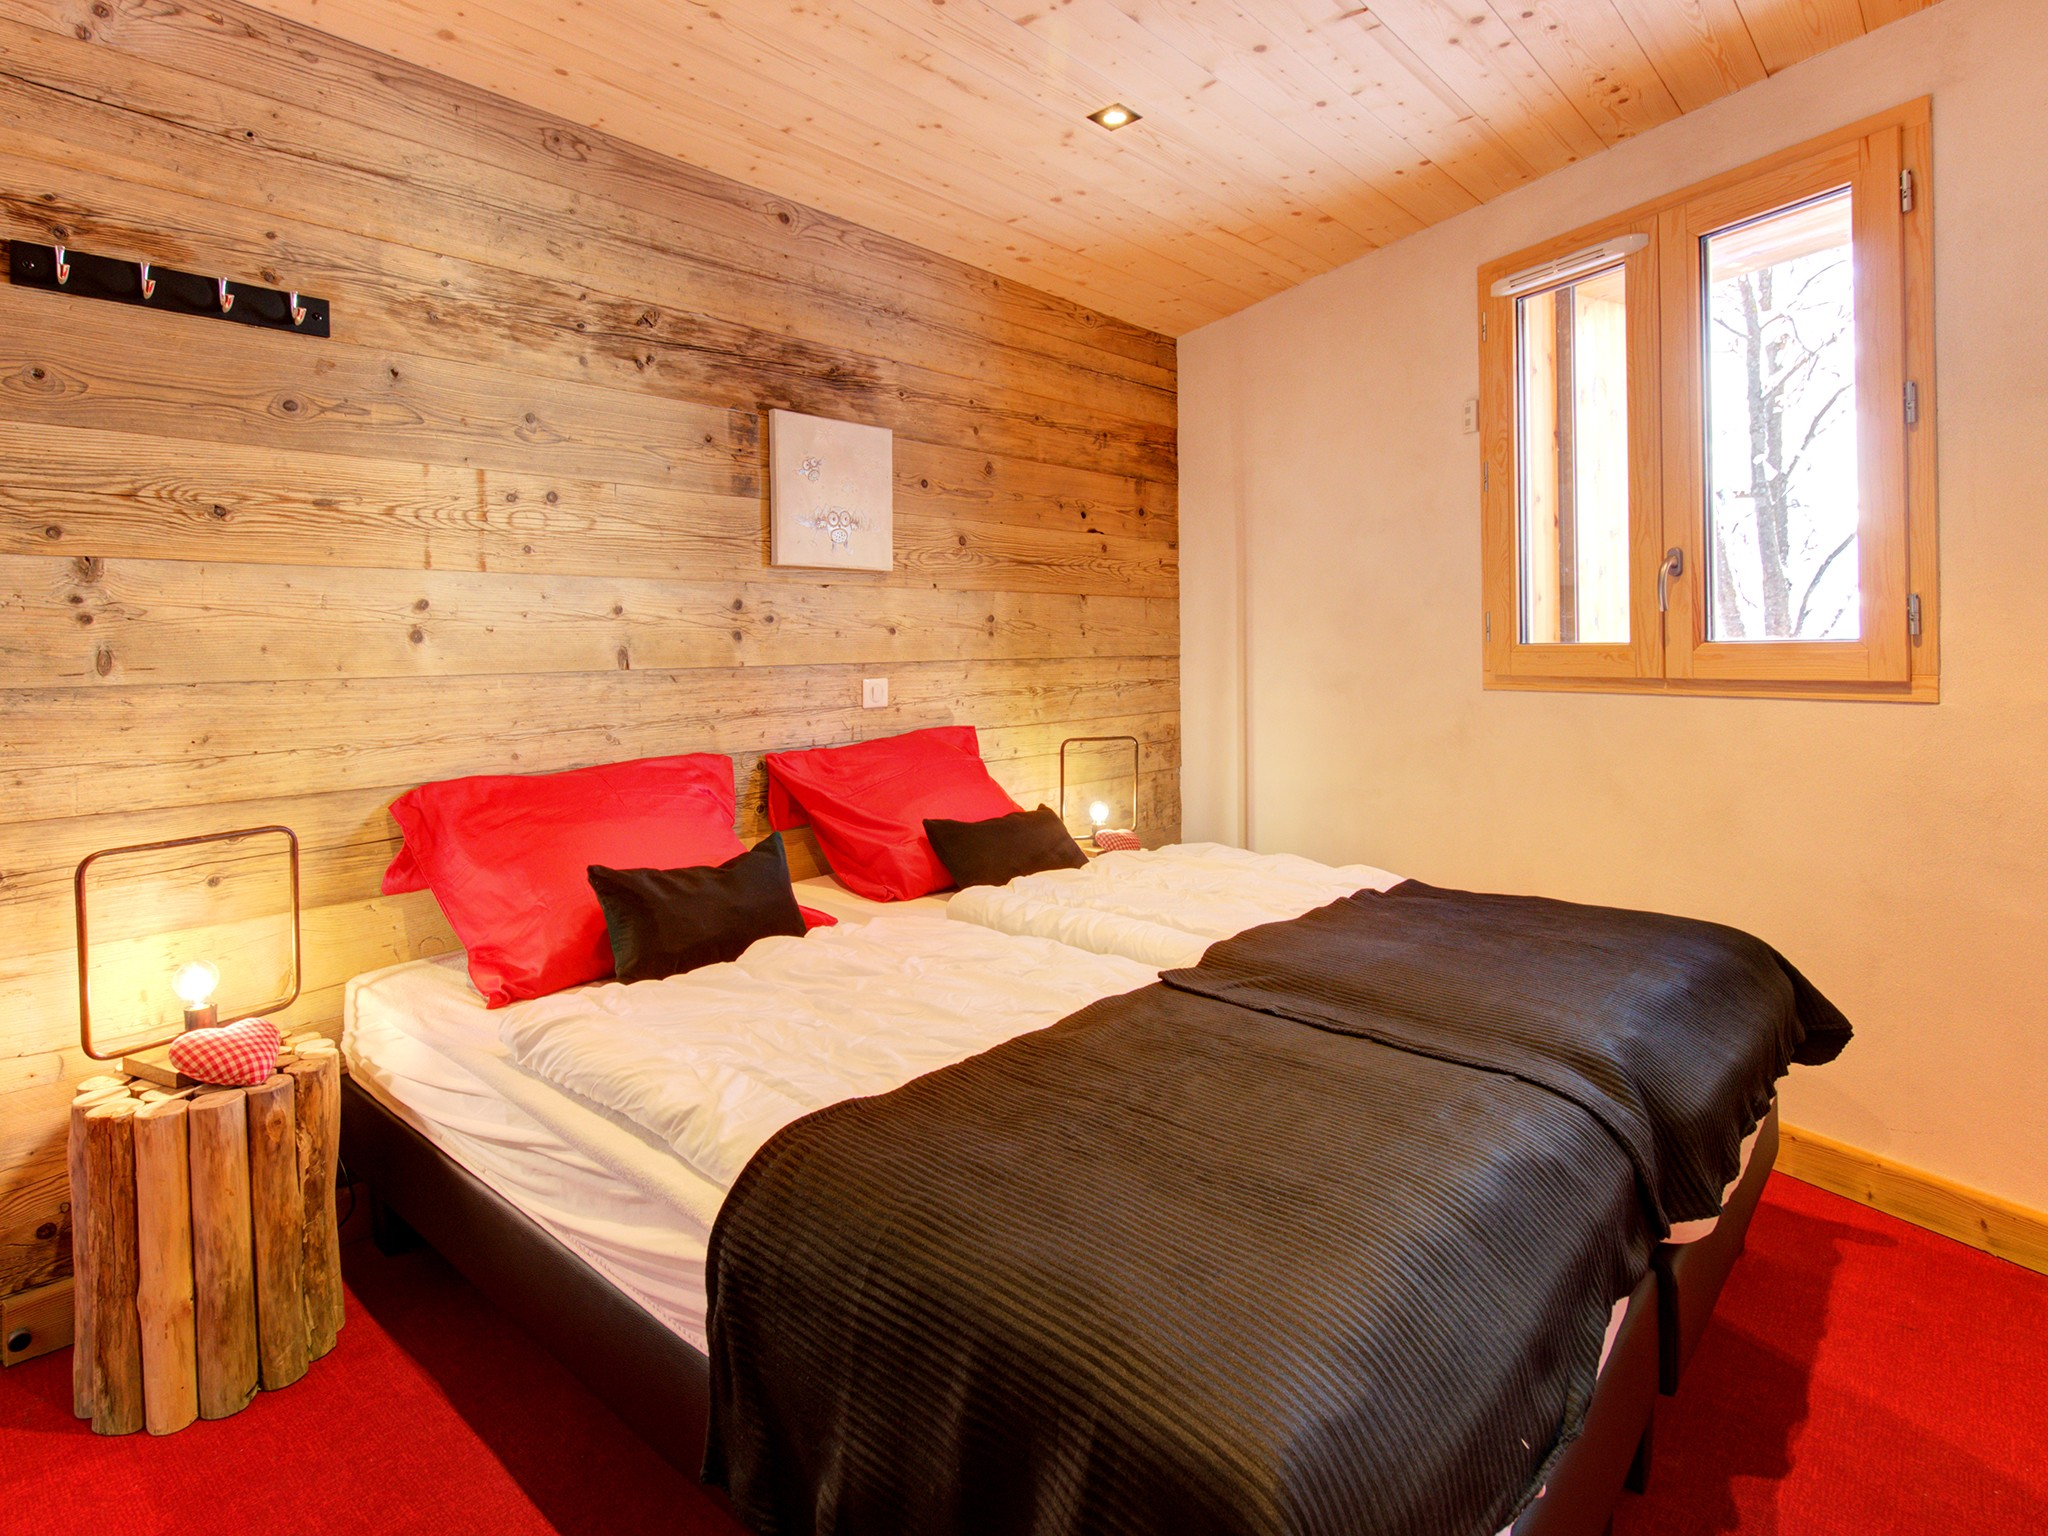 Chalet Pure Paradise - bedroom (example)